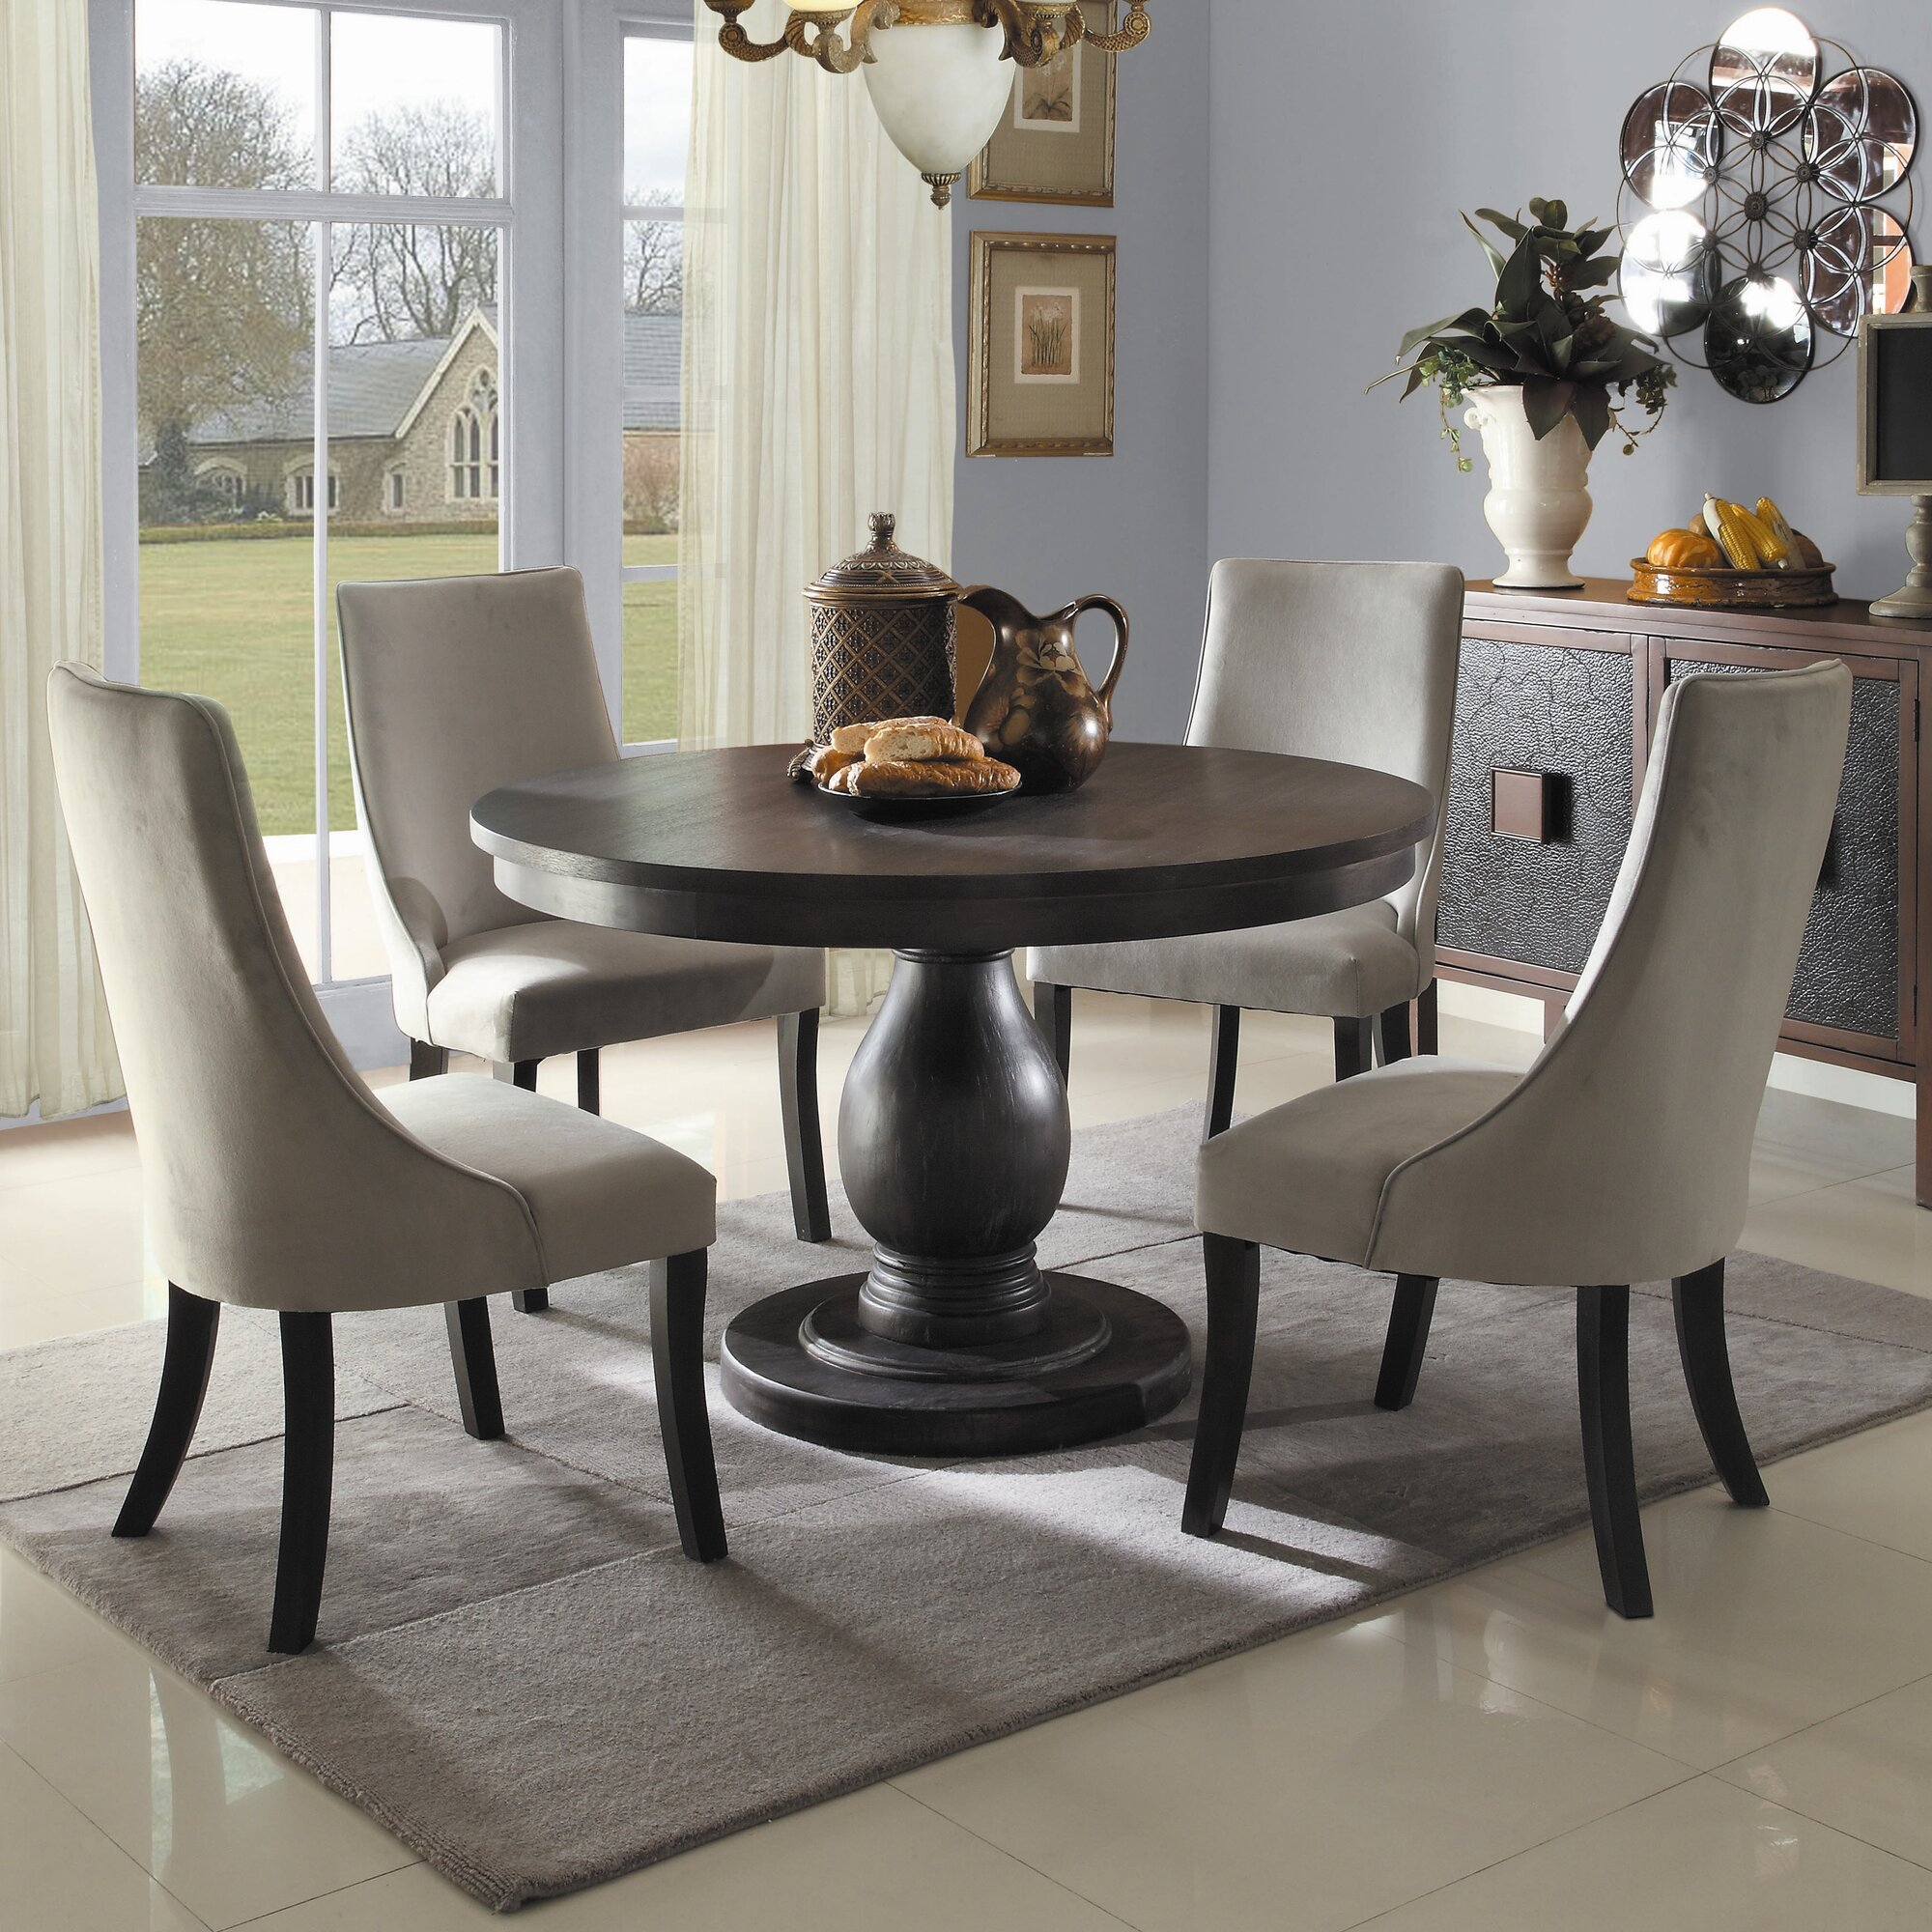 Round country kitchen tables - Round Country Kitchen Tables 3